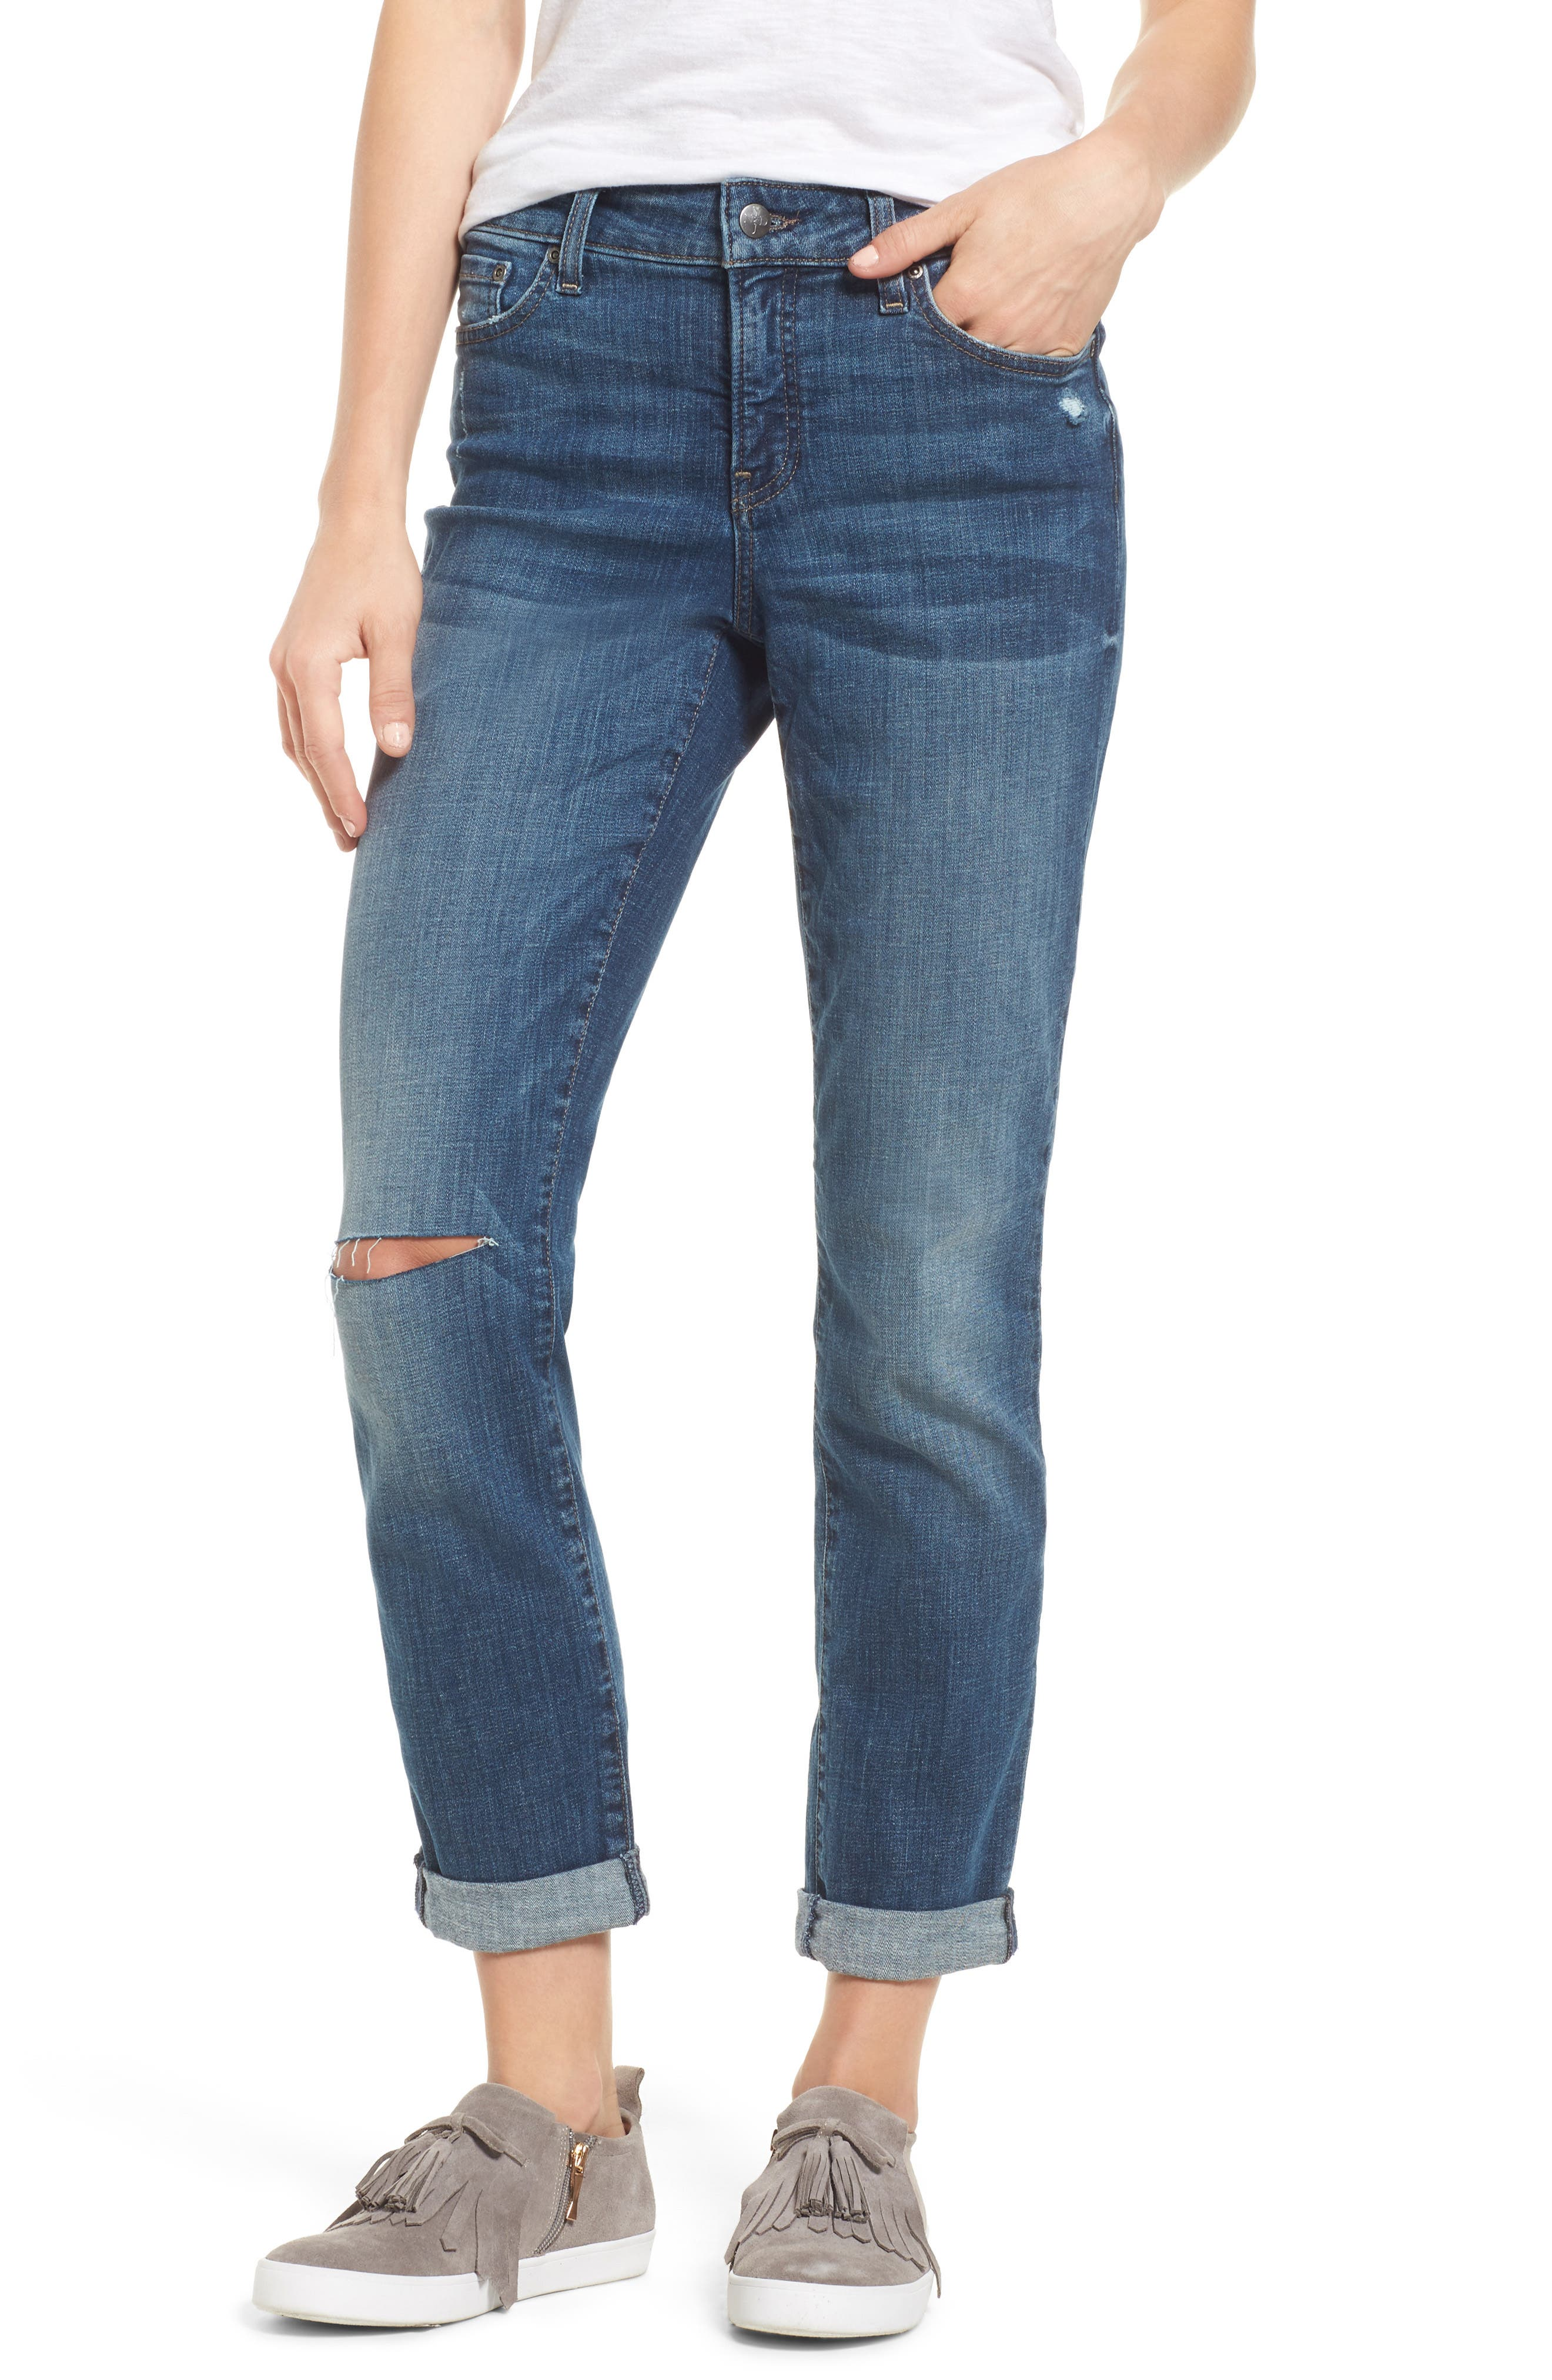 NYDJ Stretch Boyfriend Jeans (Regular & Petite)